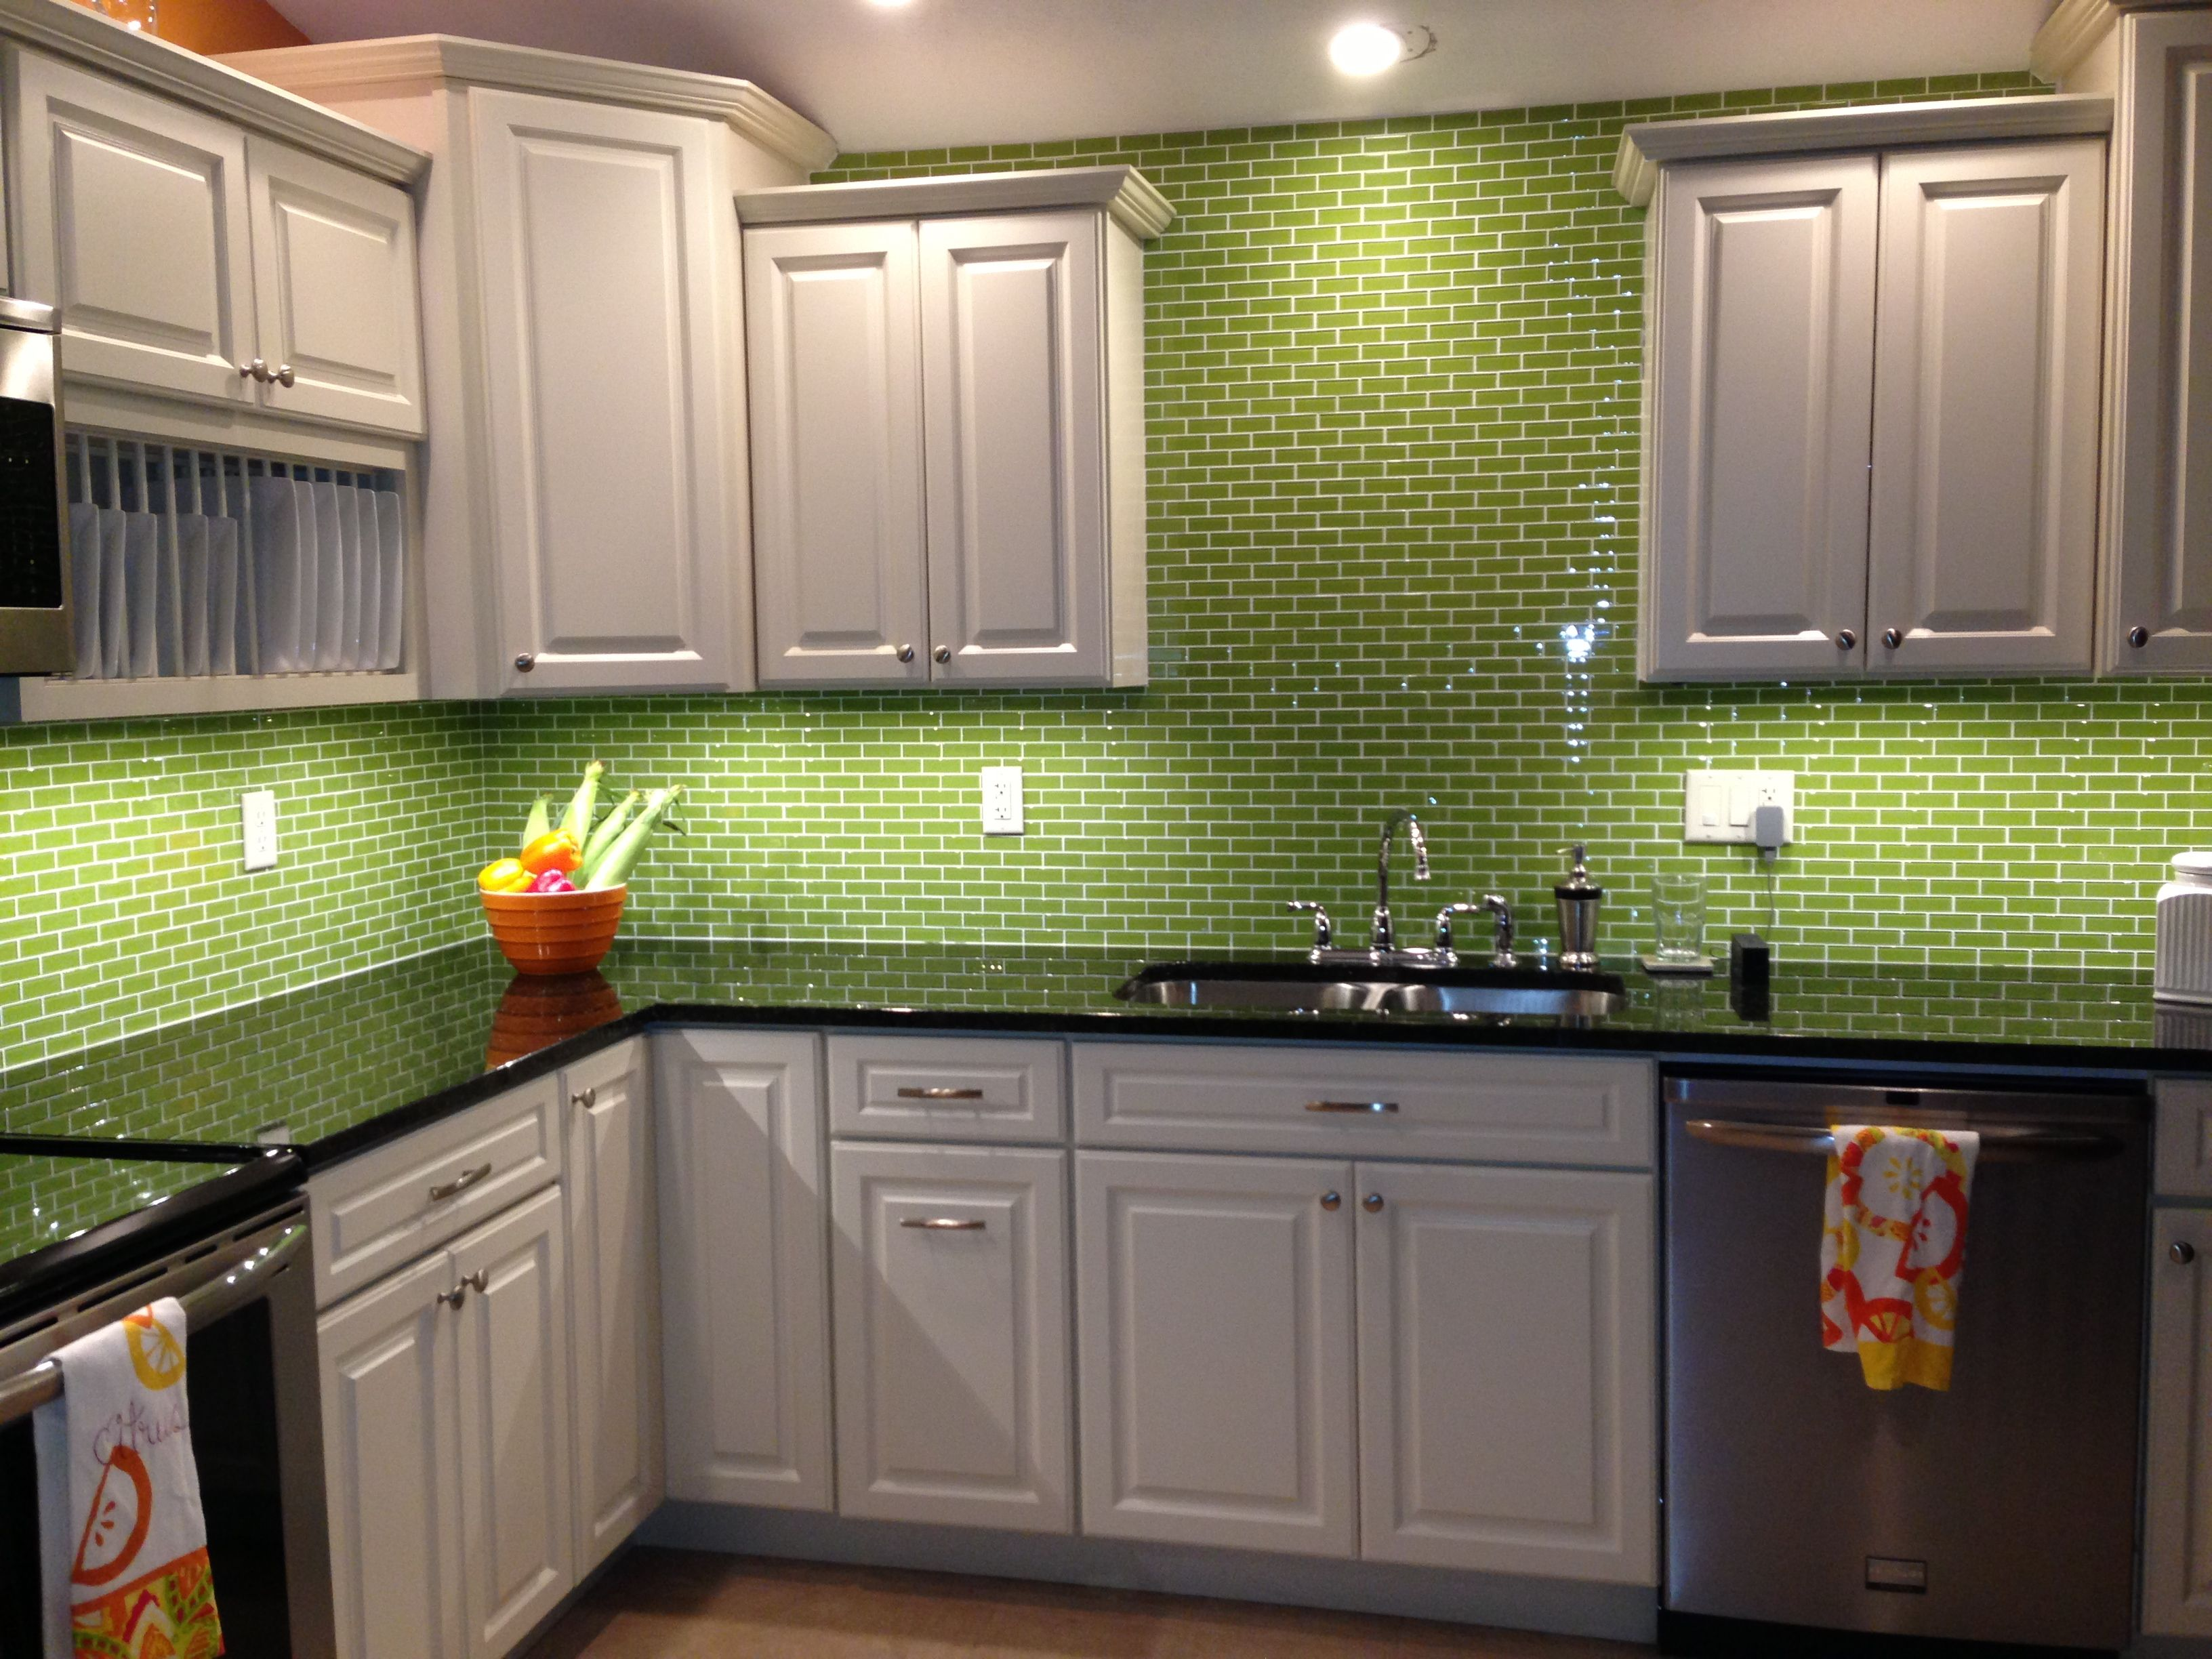 lime green glass subway tile backsplash kitchen | kitchen ideas